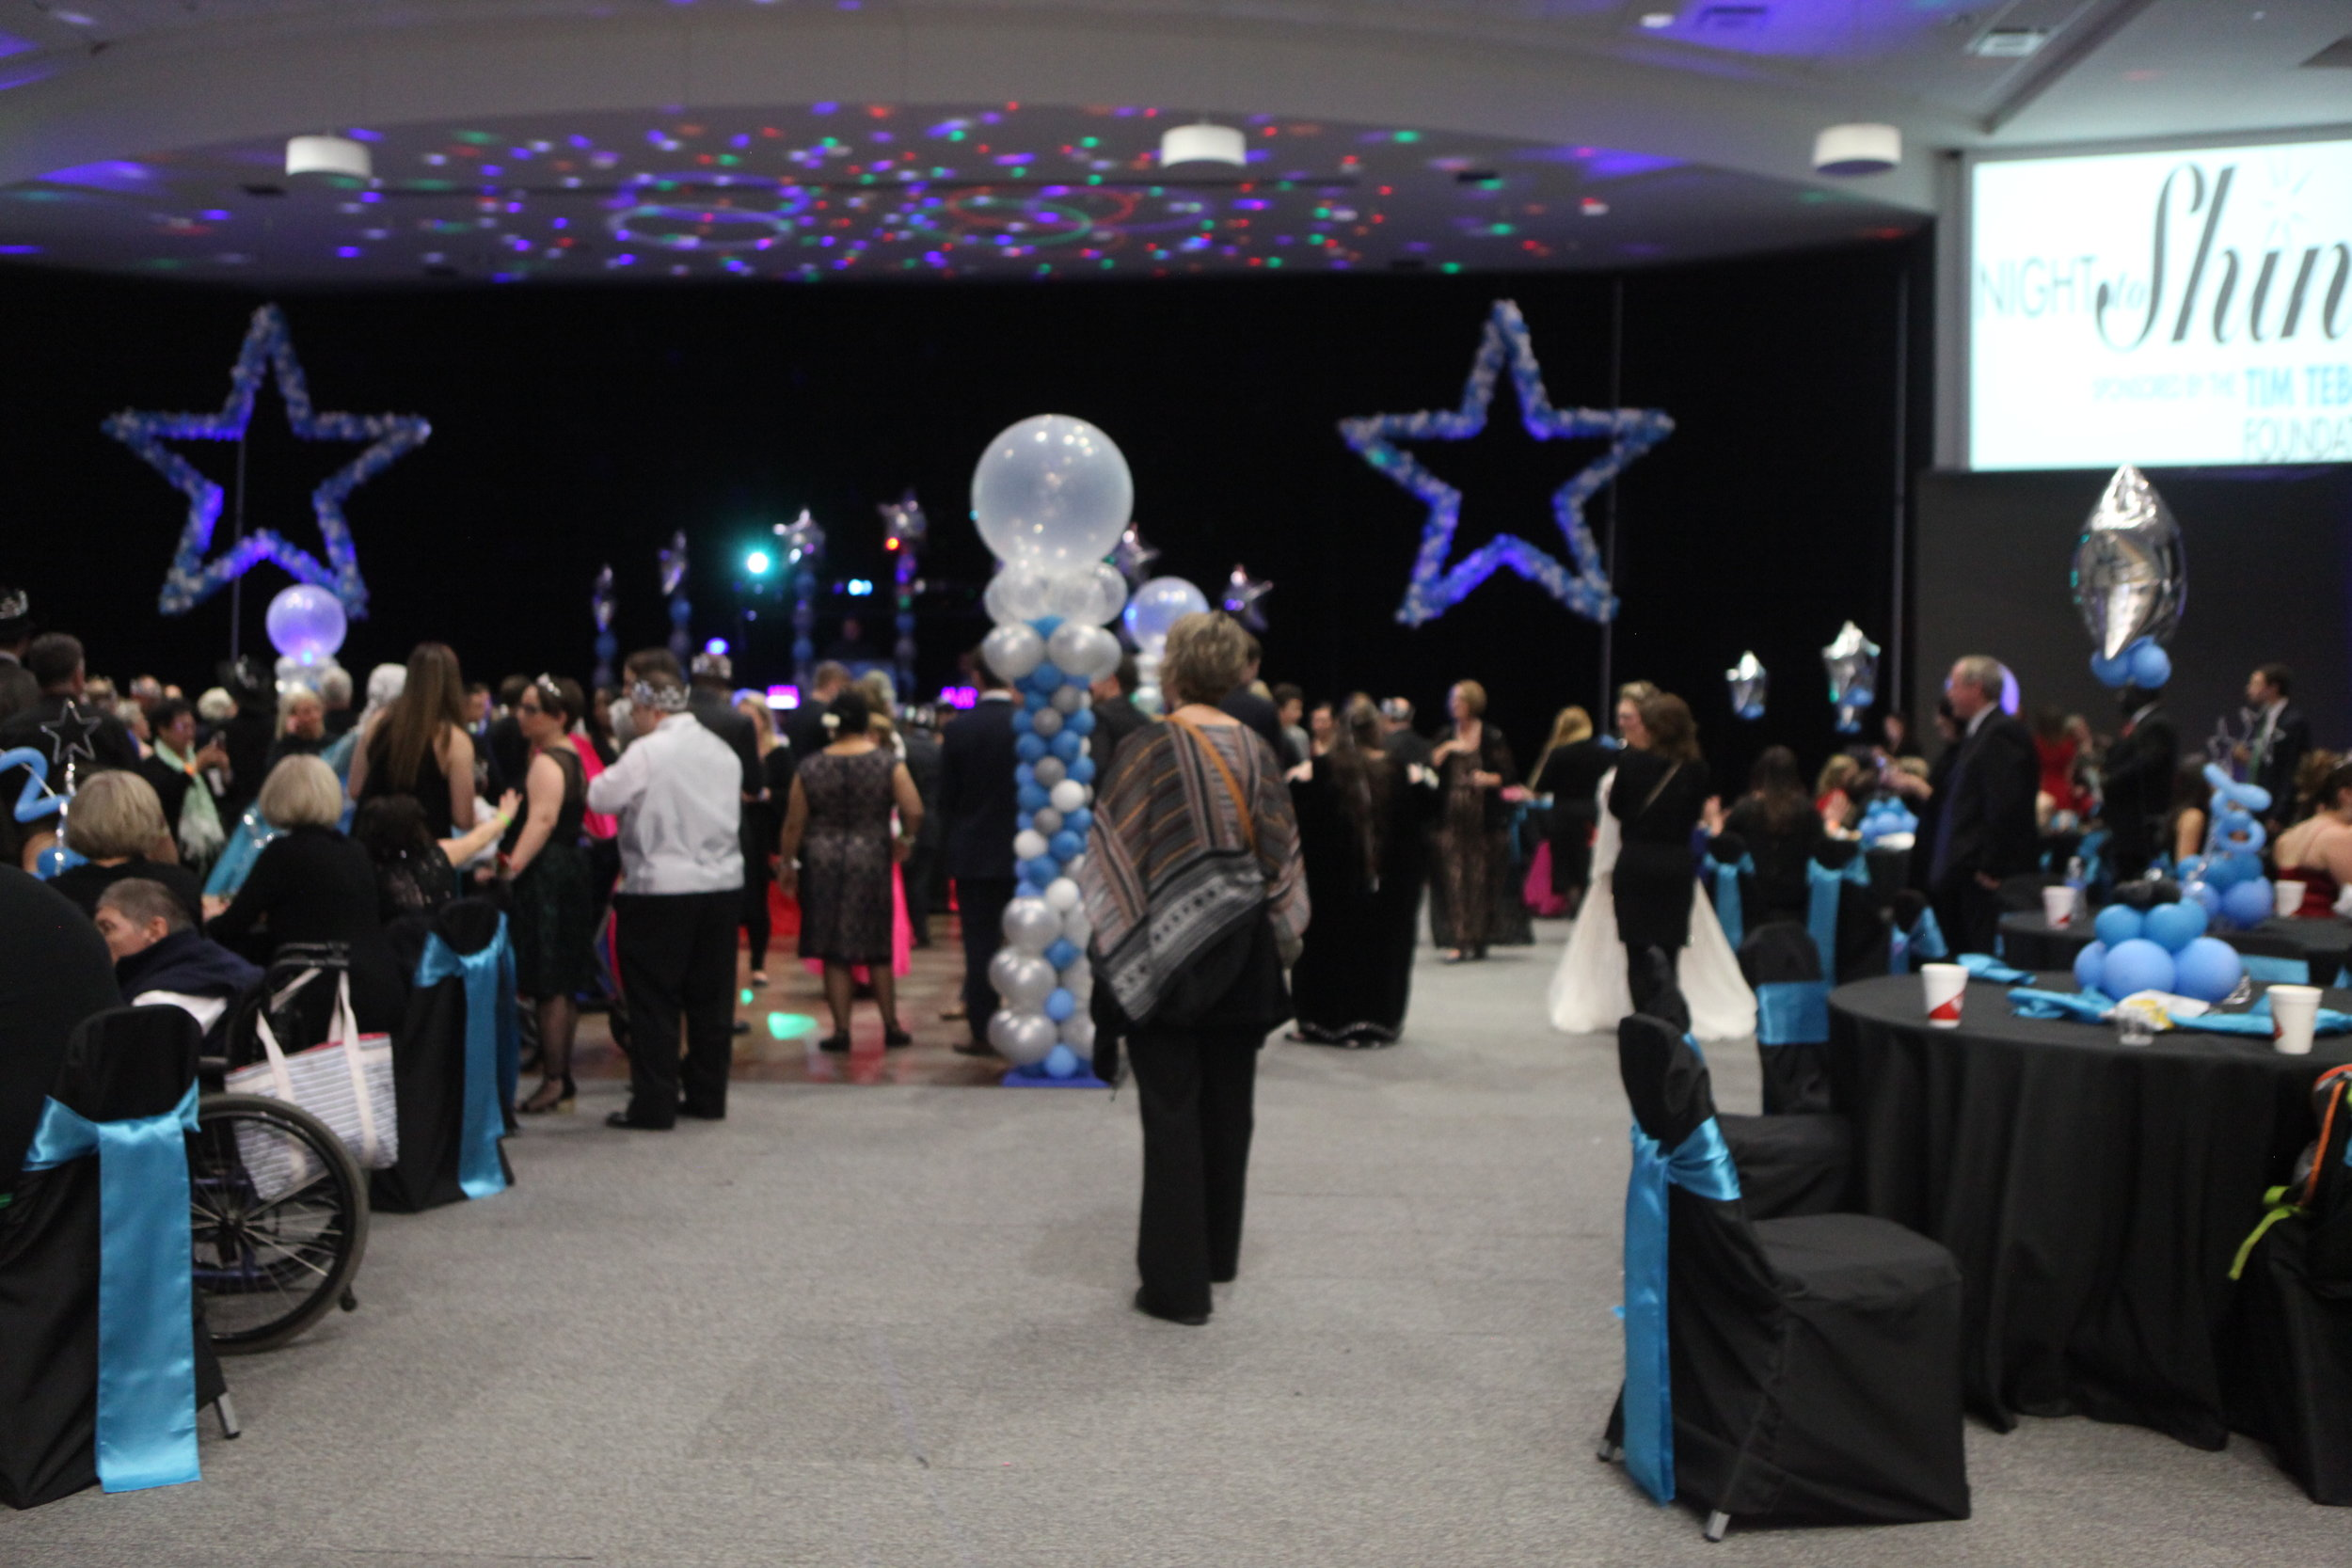 Event Sponsor : $5,000 - When you give $5,000 your business will be recognized on a corporate sponsor banner in the grand hall of Night to Shine, the slideshow at Night to Shine, publicity in the take home bag, you will receive a post on Facebook and a spot on our professionally made Night to Shine Video that will go to the Tim Tebow Foundation. You will also be introduced to do a welcome message from the grand stage of Night to Shine.Click to Donate Now